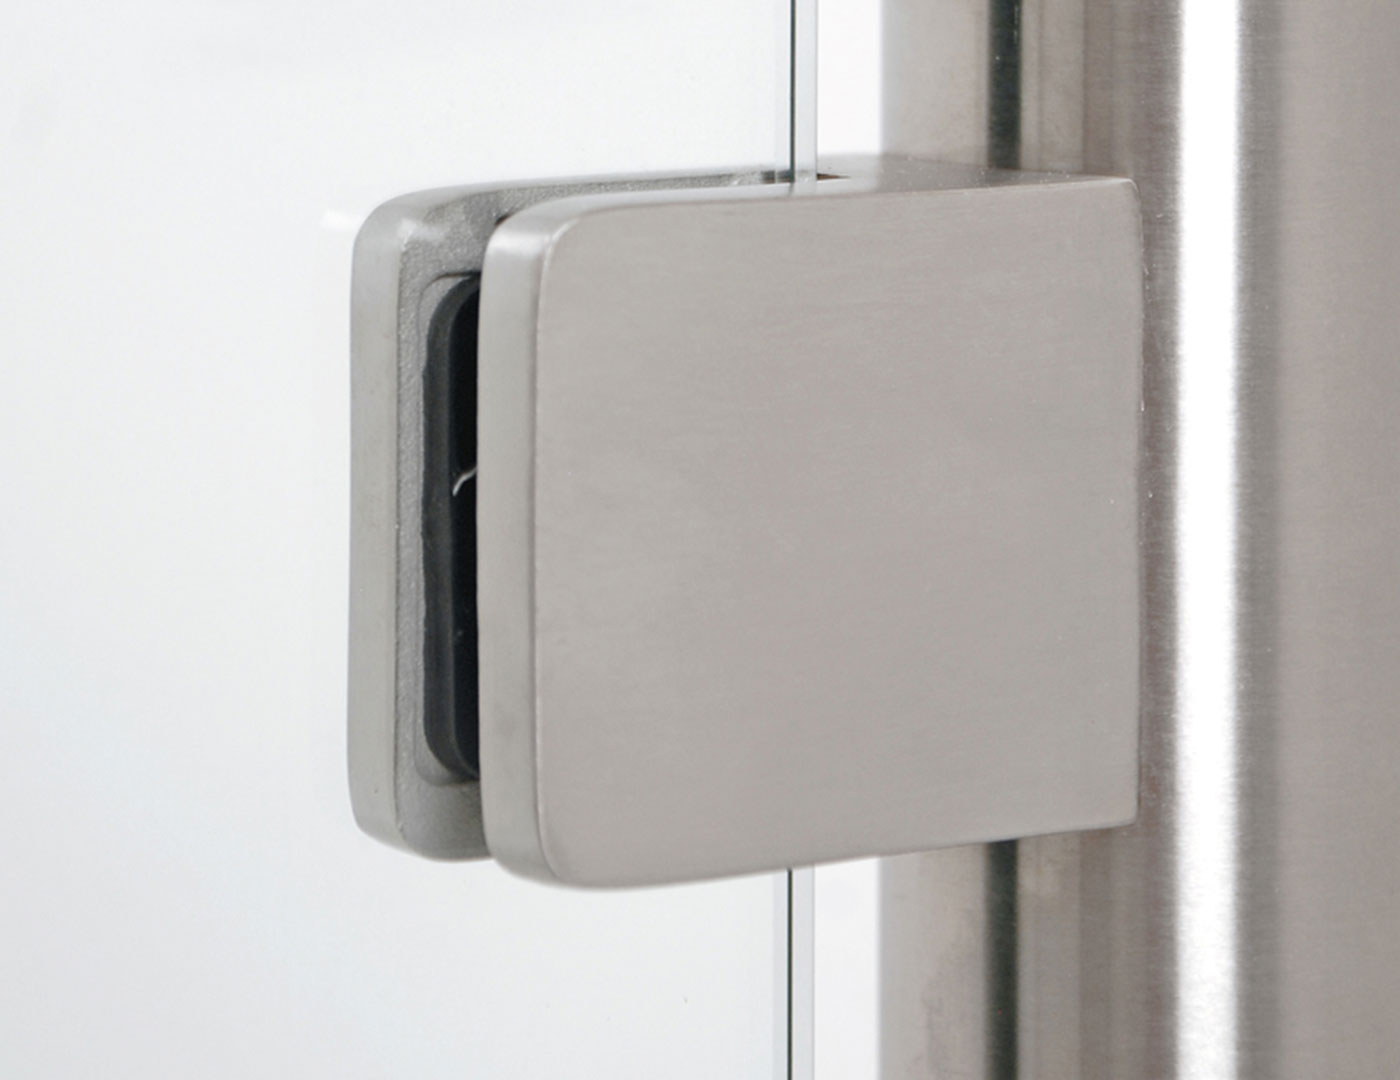 Stainless Steel square-shape glass clamp